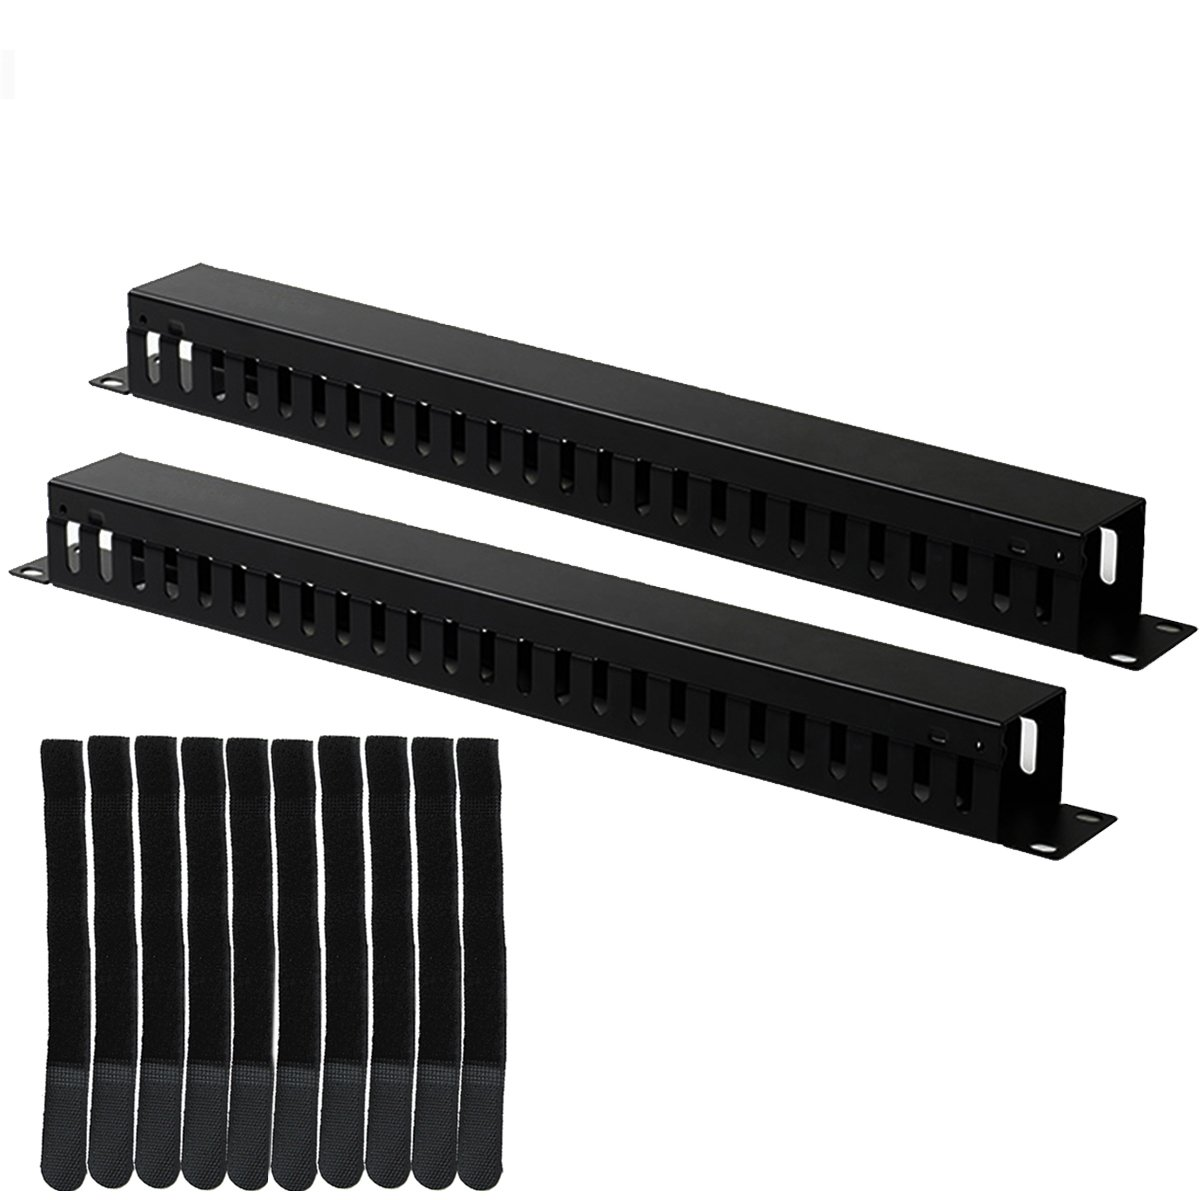 Lancher 2-Pack 19 Inch 1U Cable Management